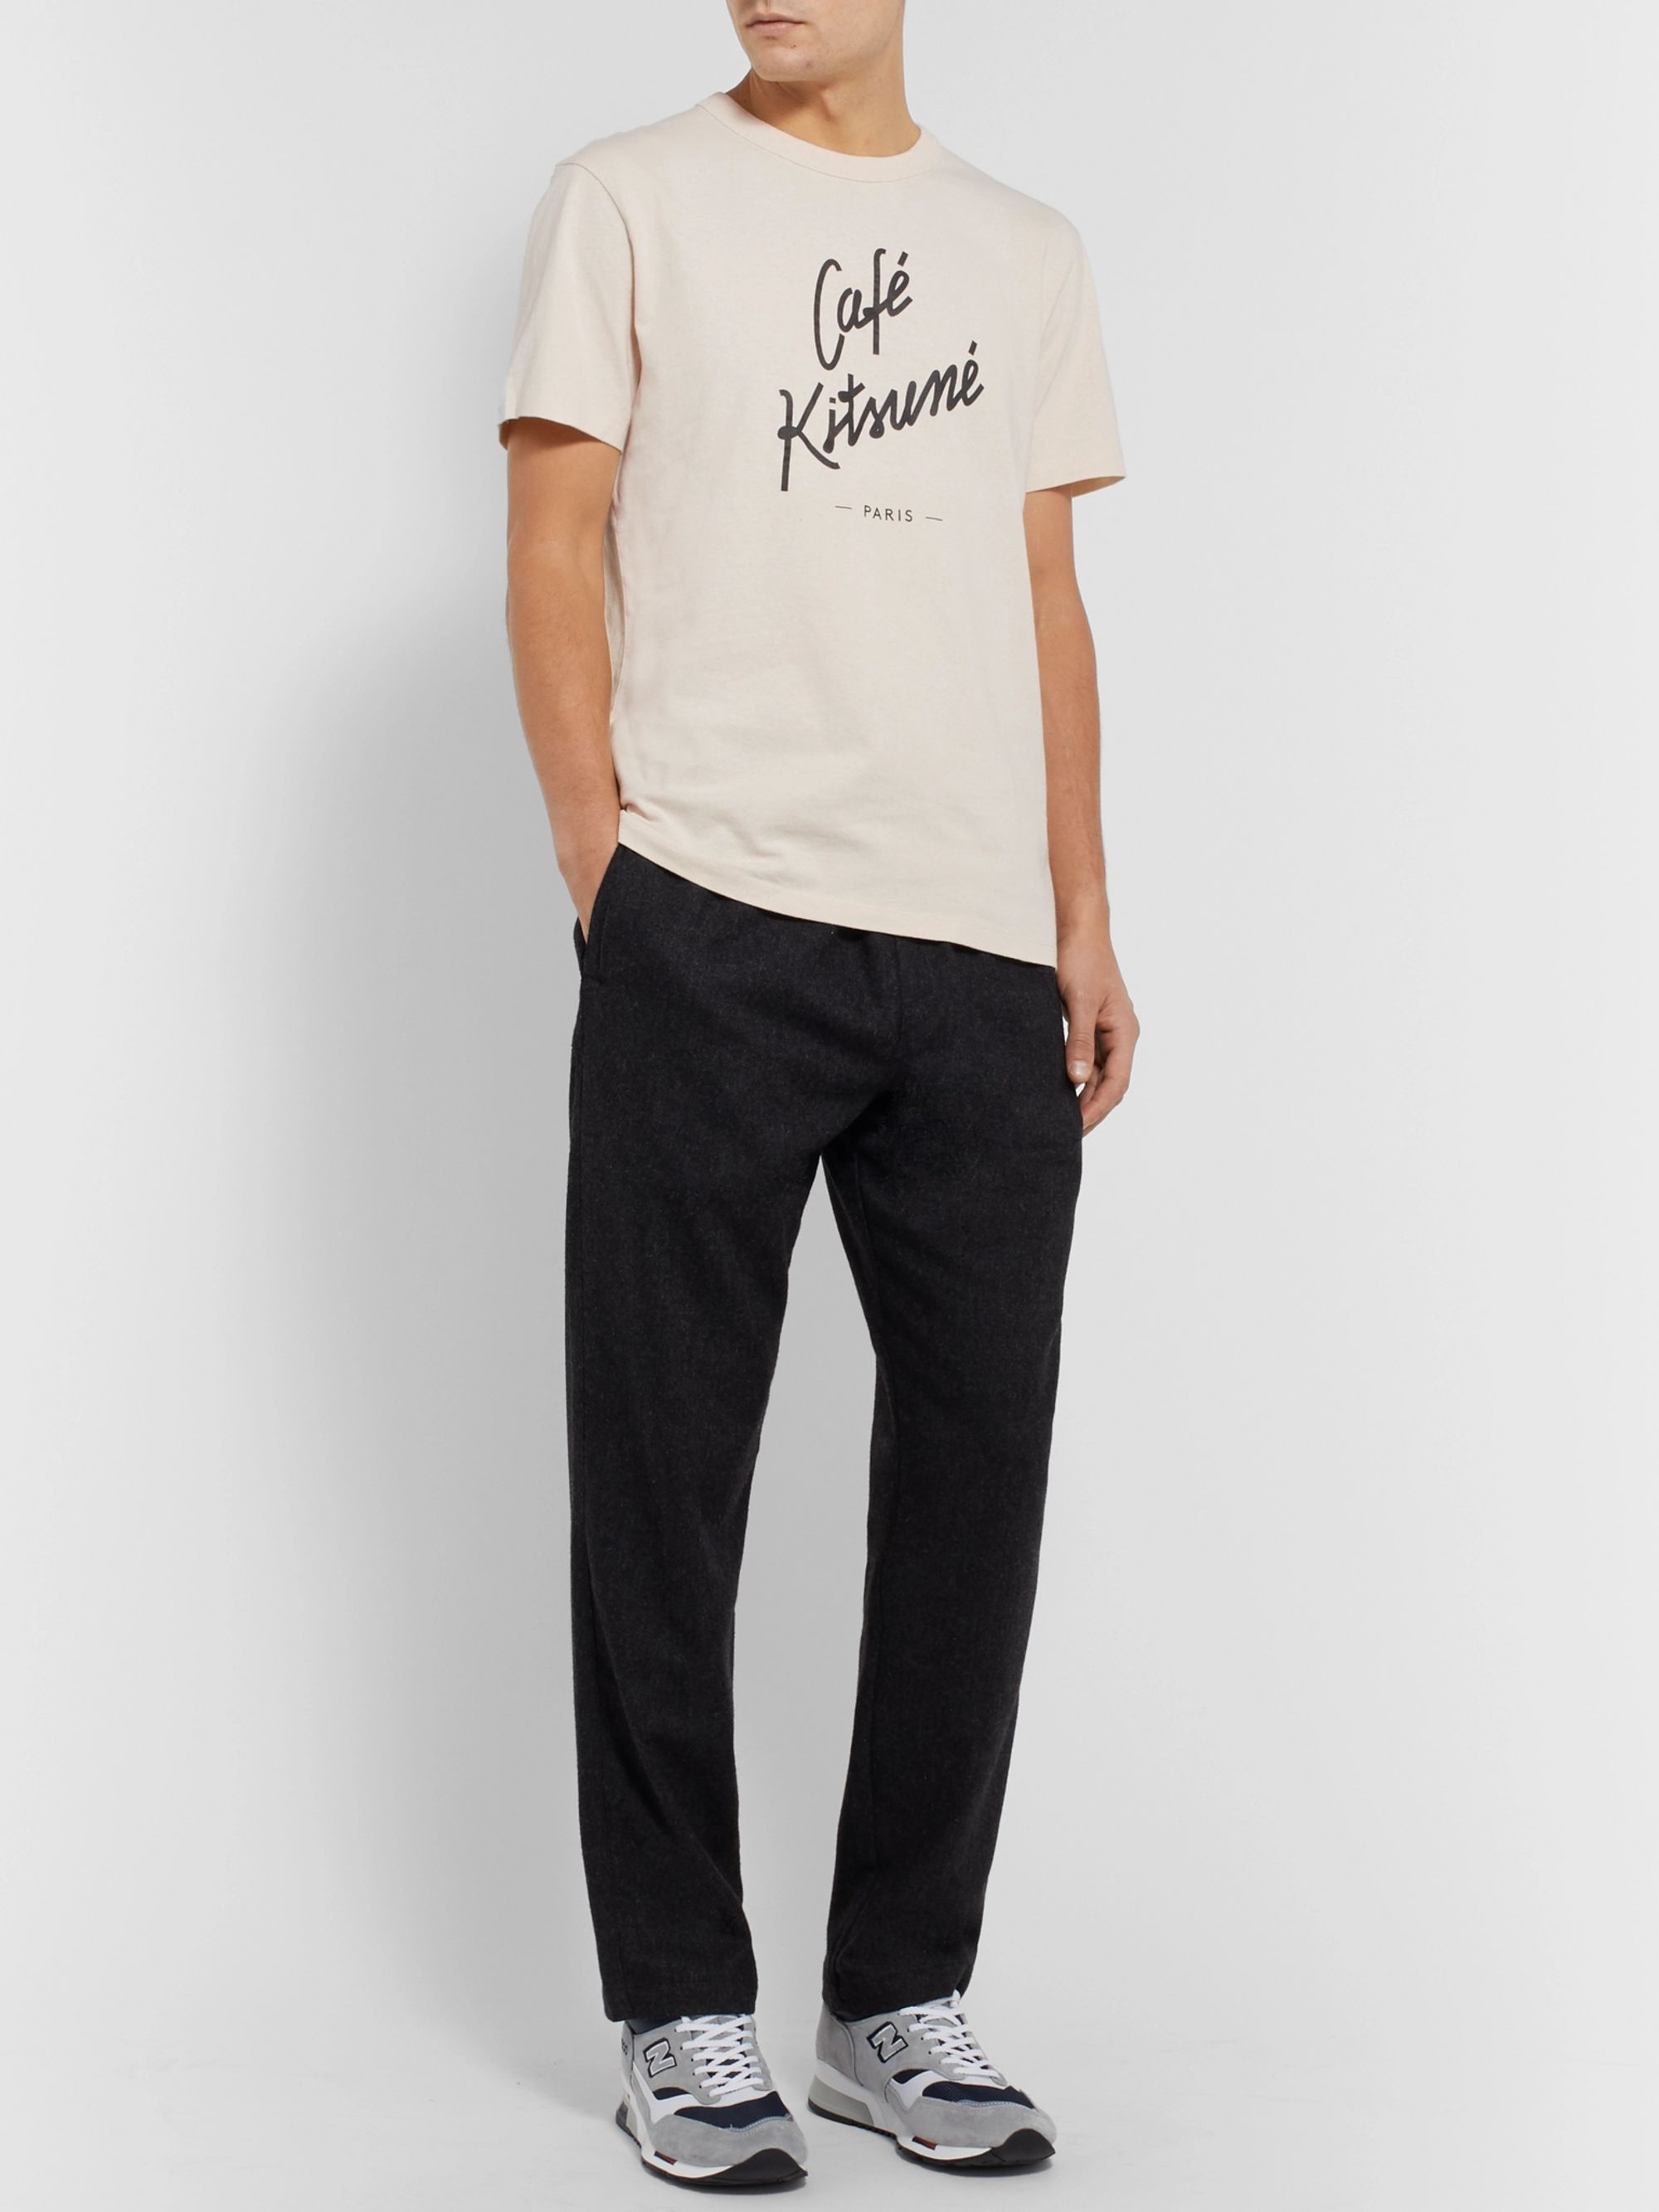 Café Kitsuné Slim-Fit Logo-Print Cotton-Jersey T-Shirt